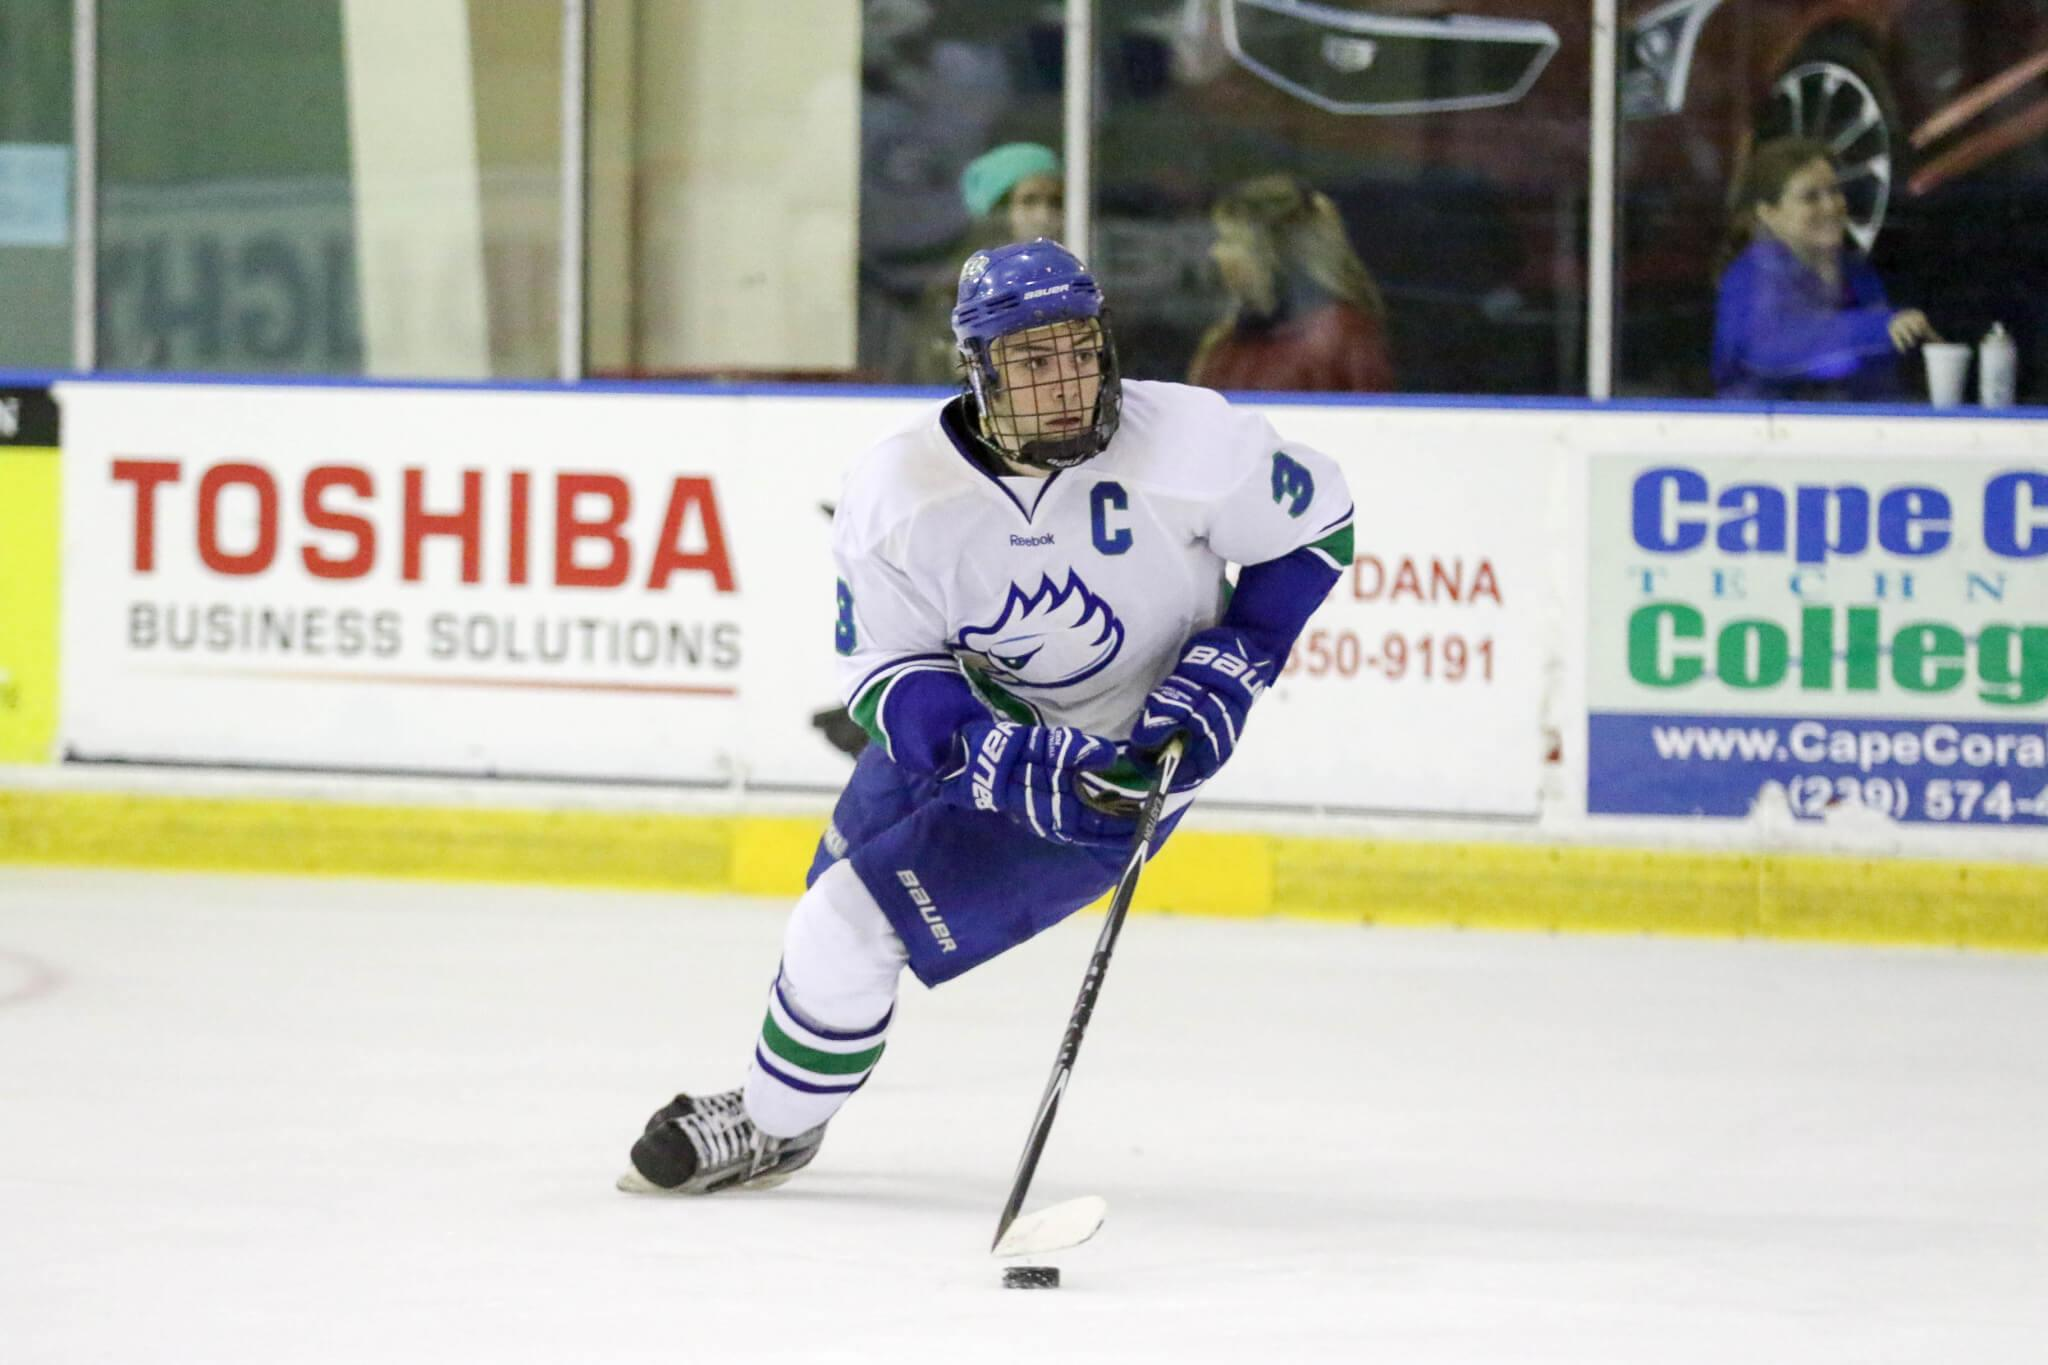 FGCU DII Hockey complete first road trip, stay unbeaten